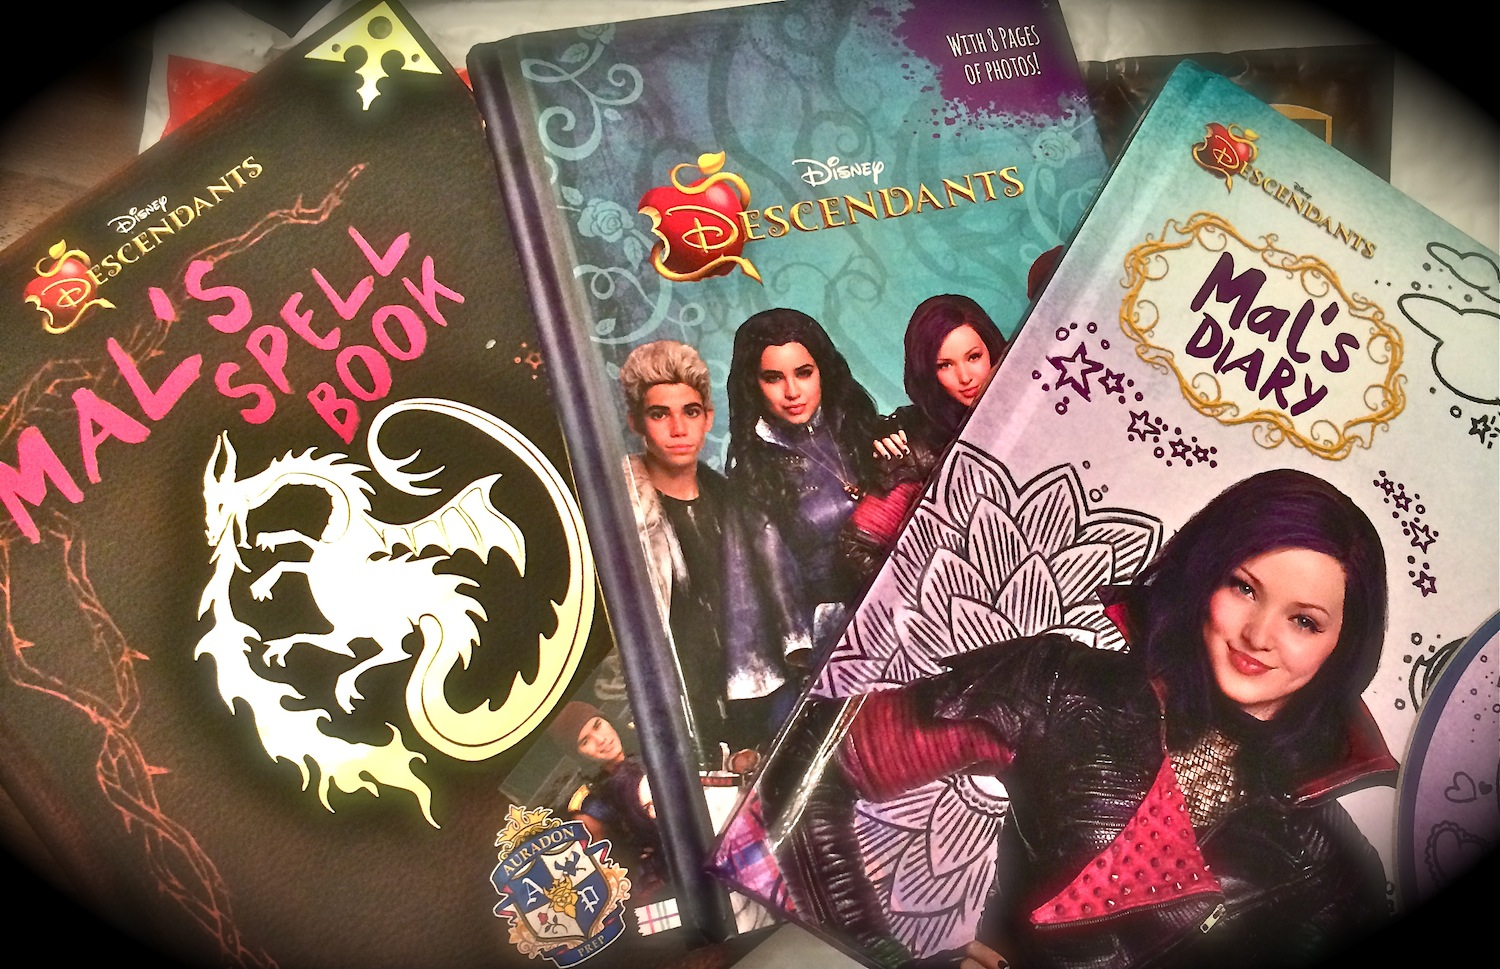 Disney Sisters: Descendants: 3 Books That Will Put A Spell On You